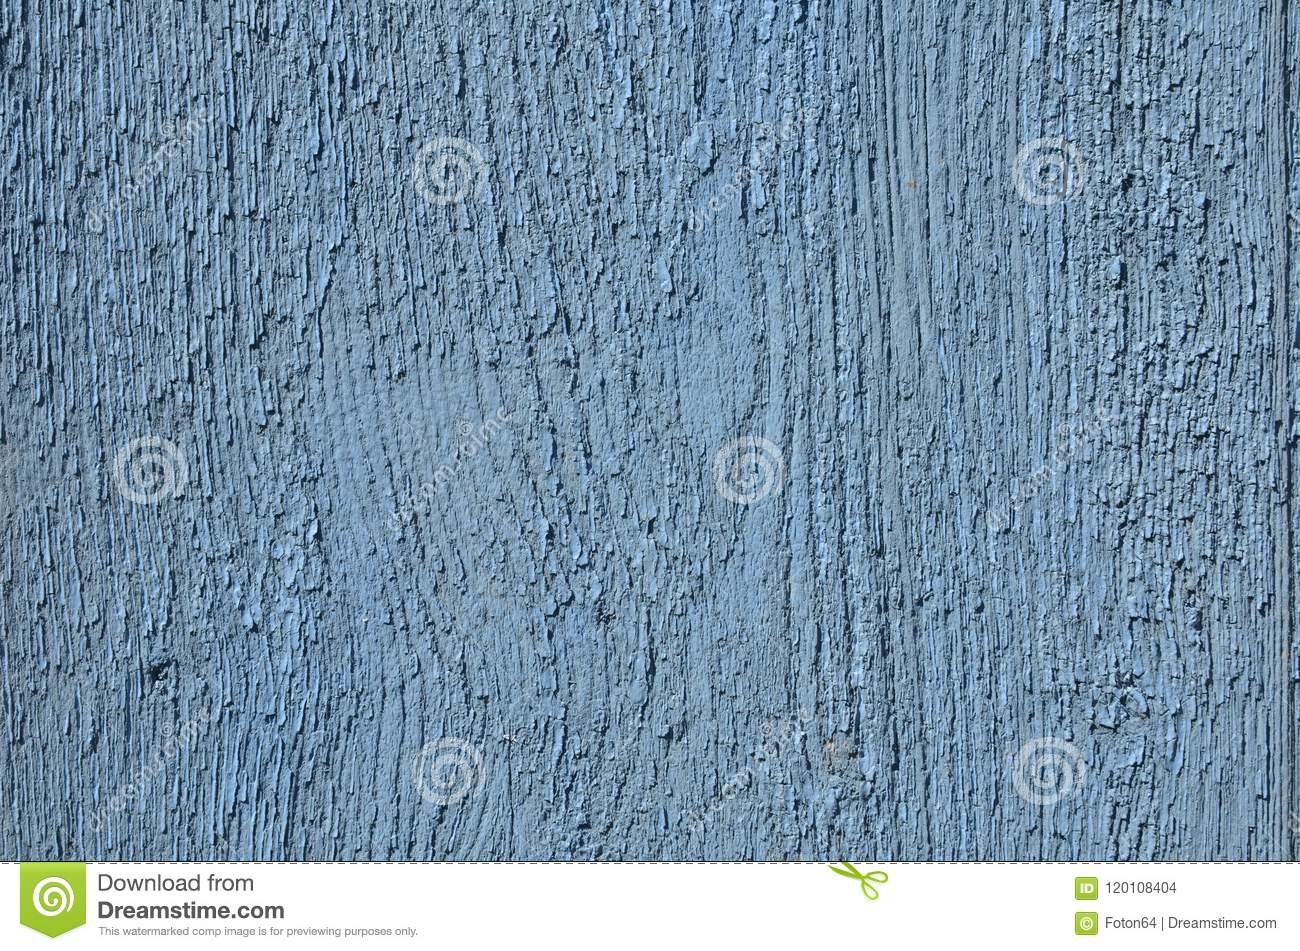 Wood board rough texture painted in blue